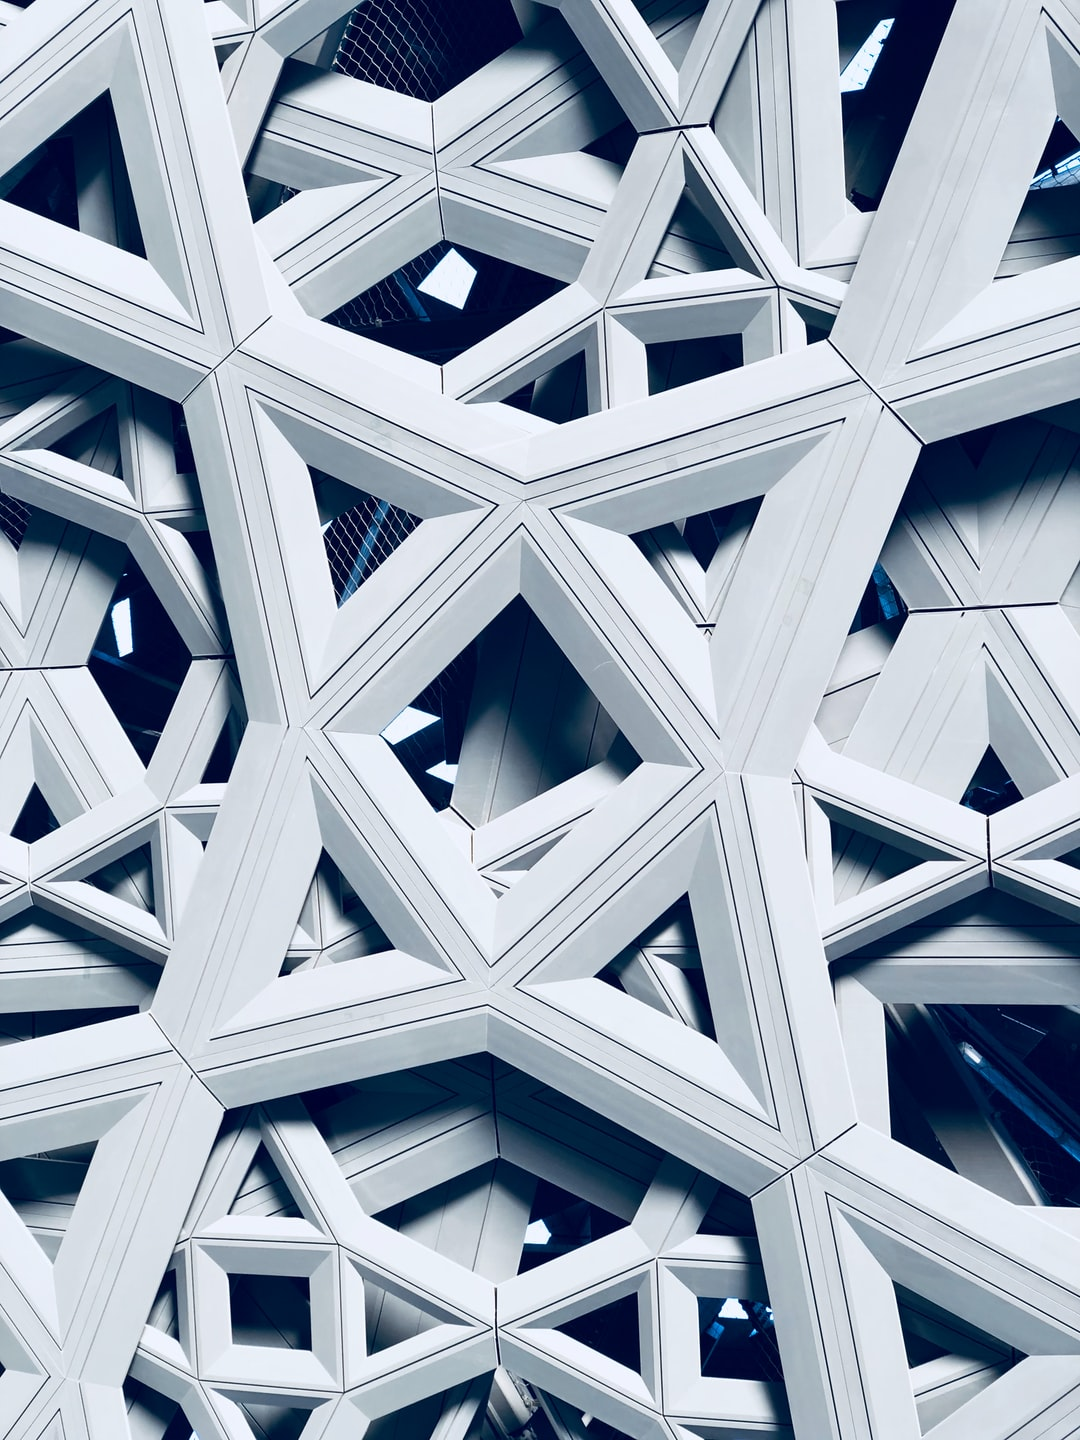 The abstraction of architure of the Abu Dhabi Louvre Museum ceiling it's a piece of art on it's own.